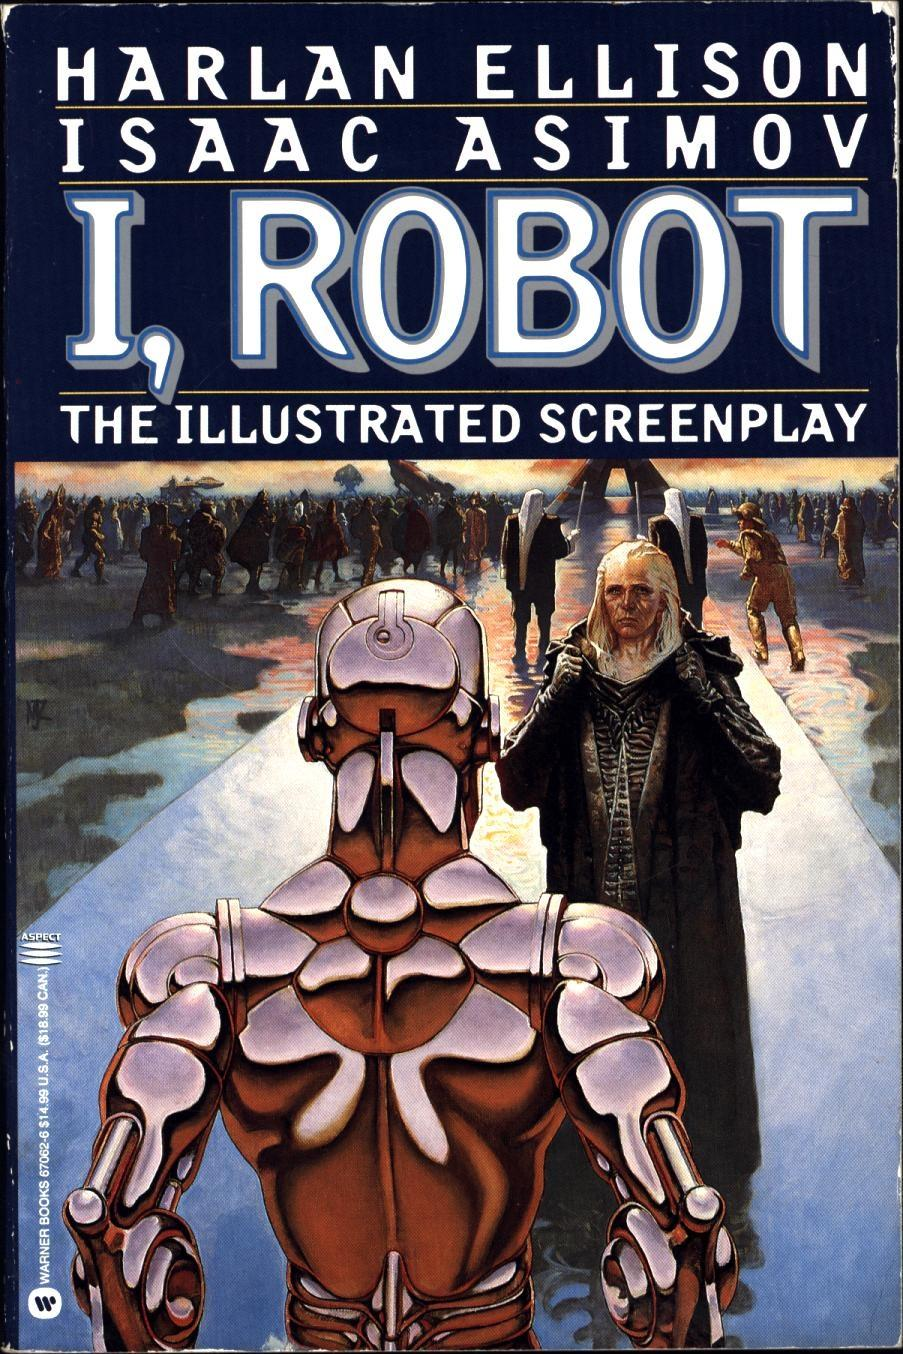 I Robot I Robot The Illustrated Screenplay